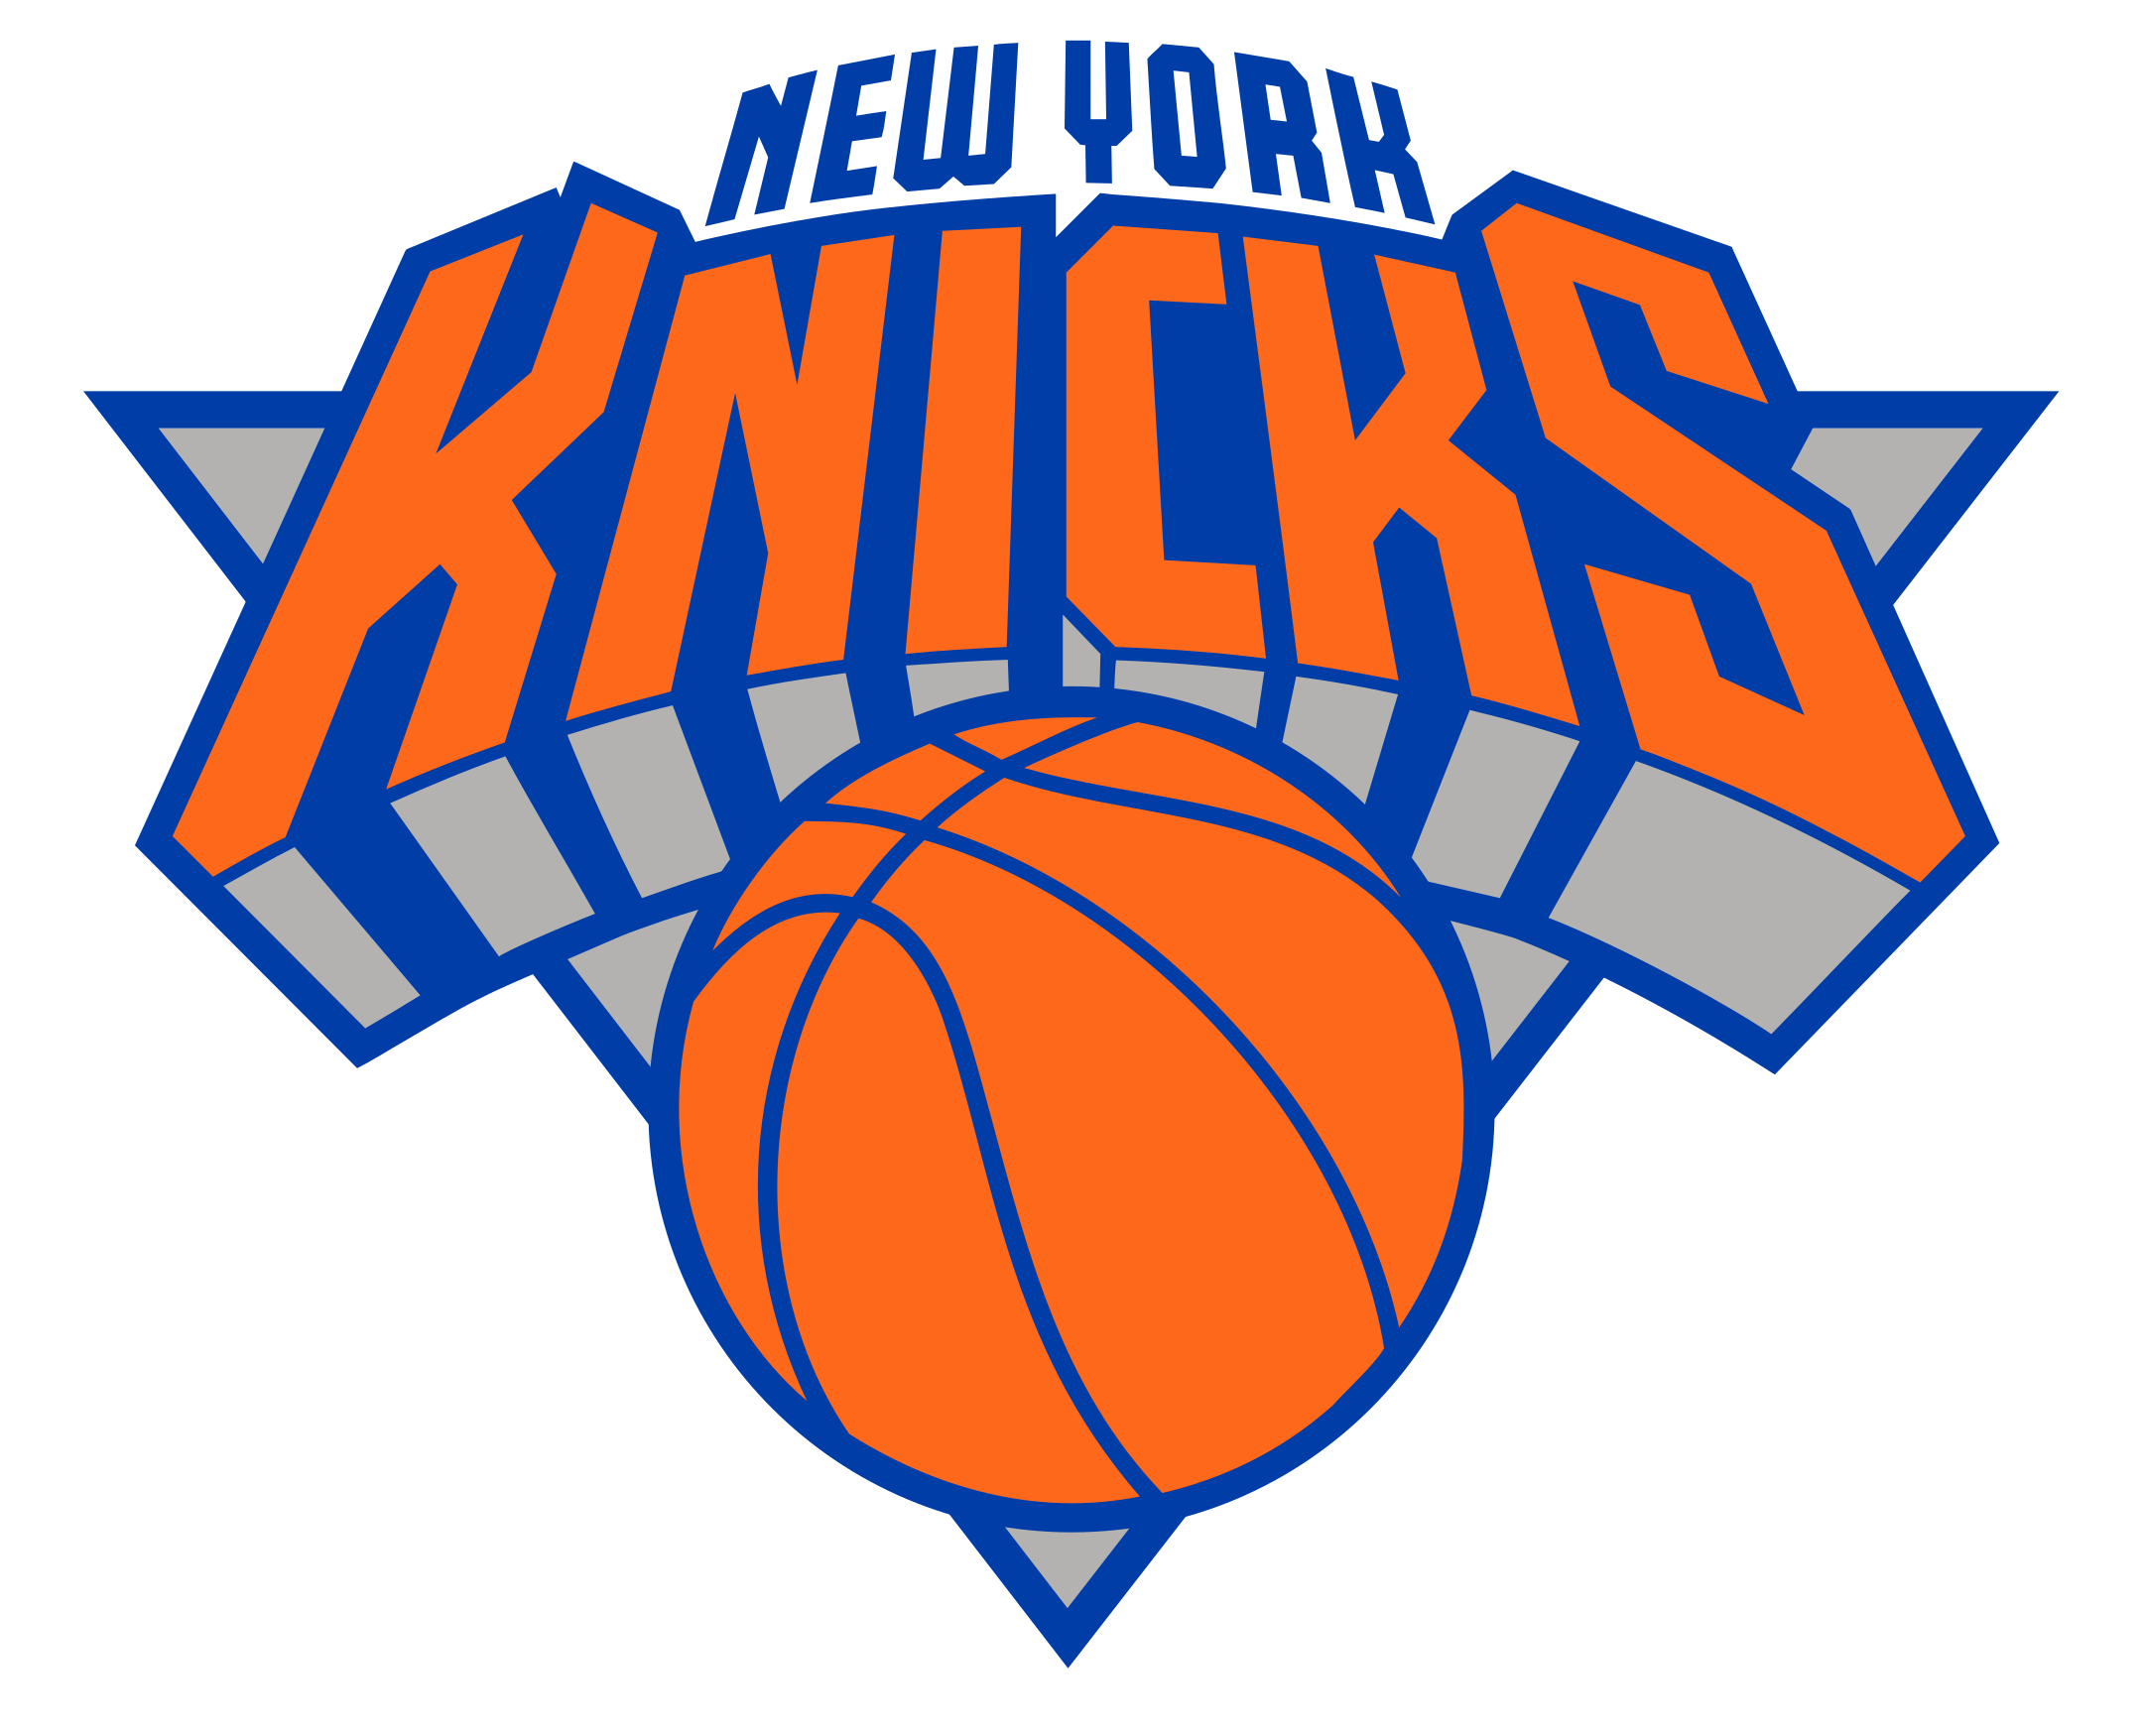 new york knicks logo 1 - New York Knicks Logo